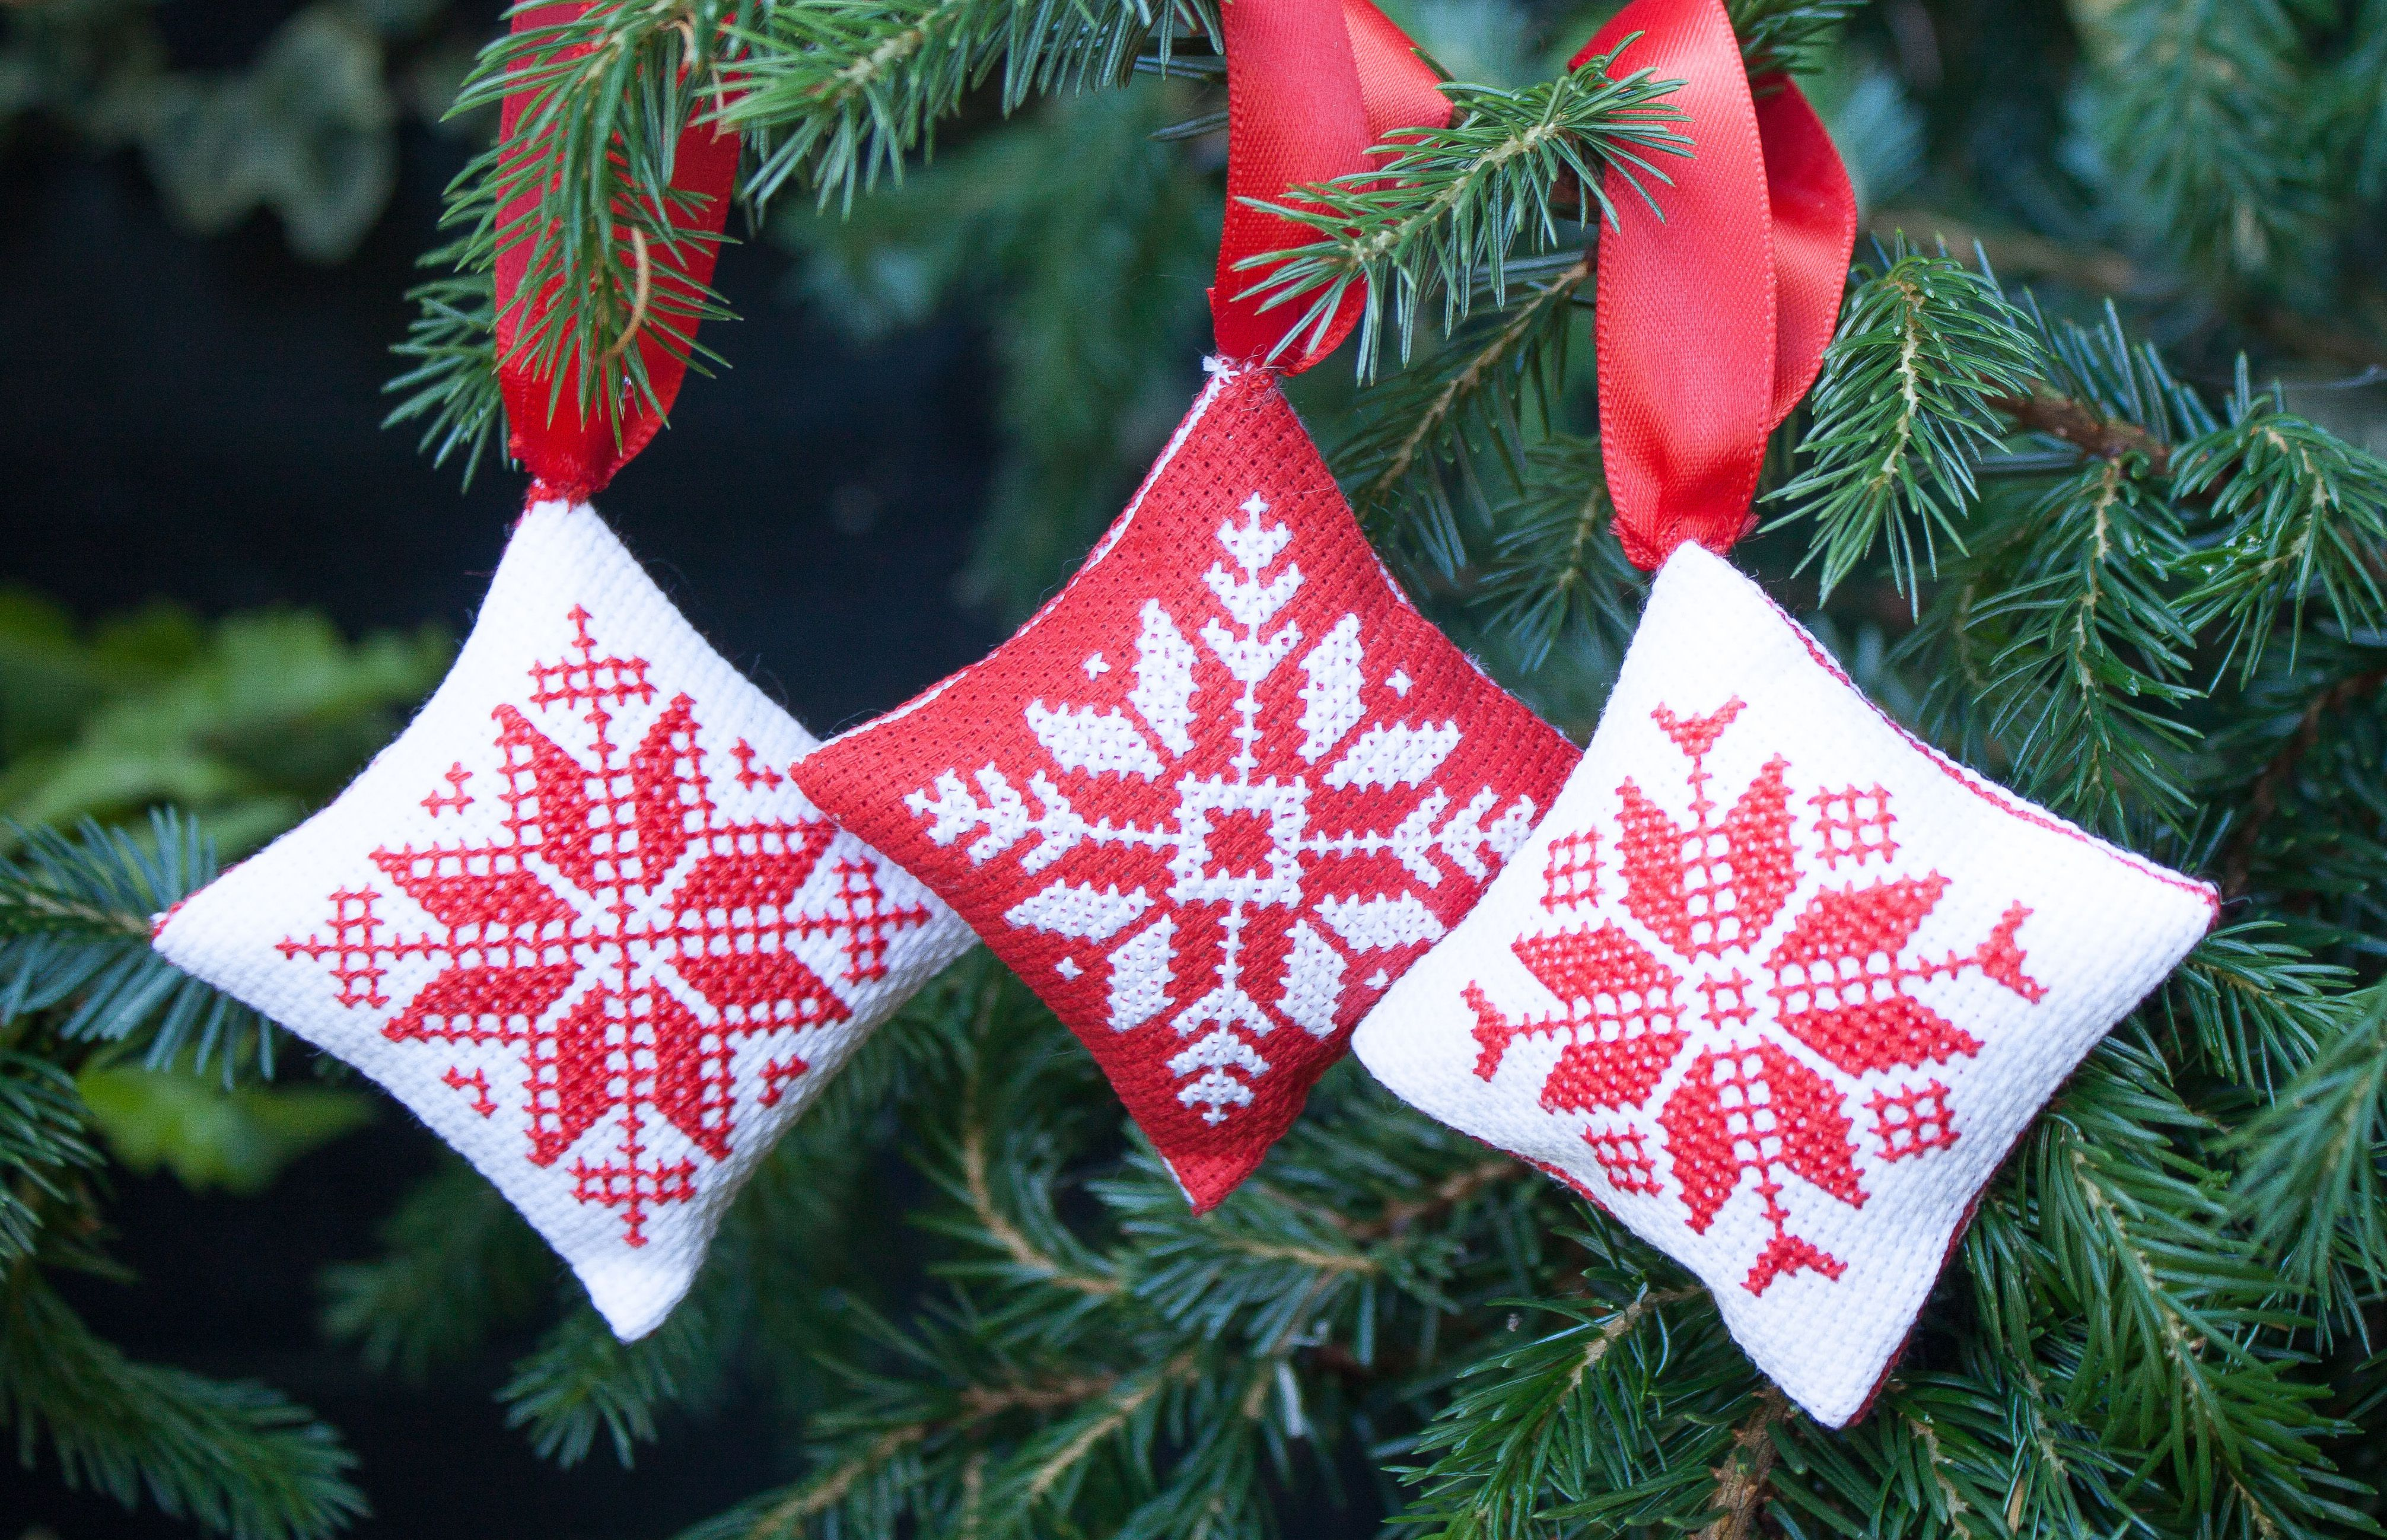 Make your own Christmas Cross stitch baubles. Simple designs in a Nordic style.